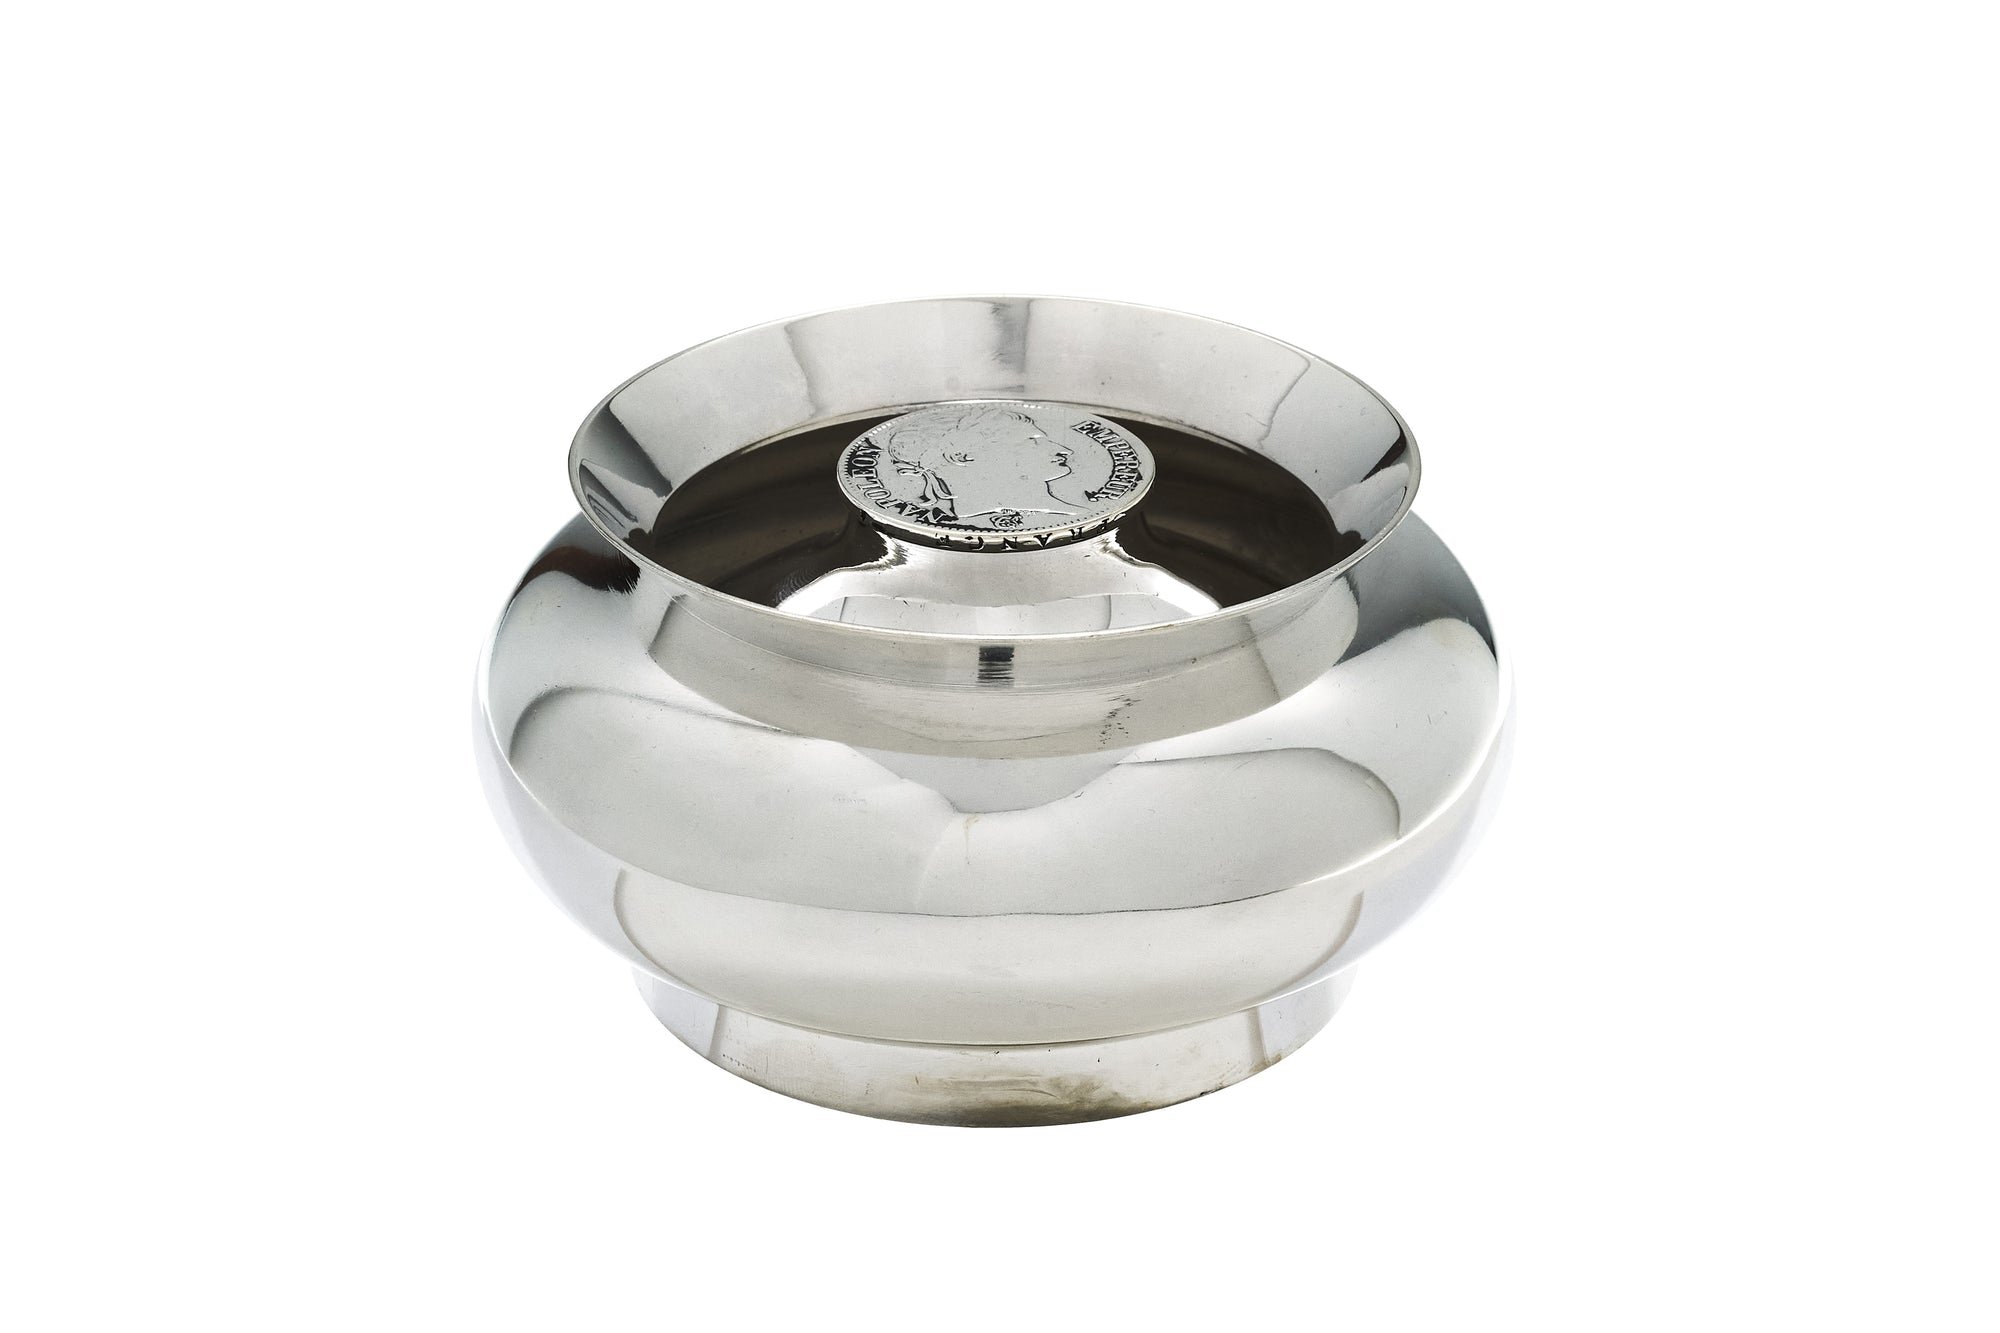 Hermes Coin Ashtray